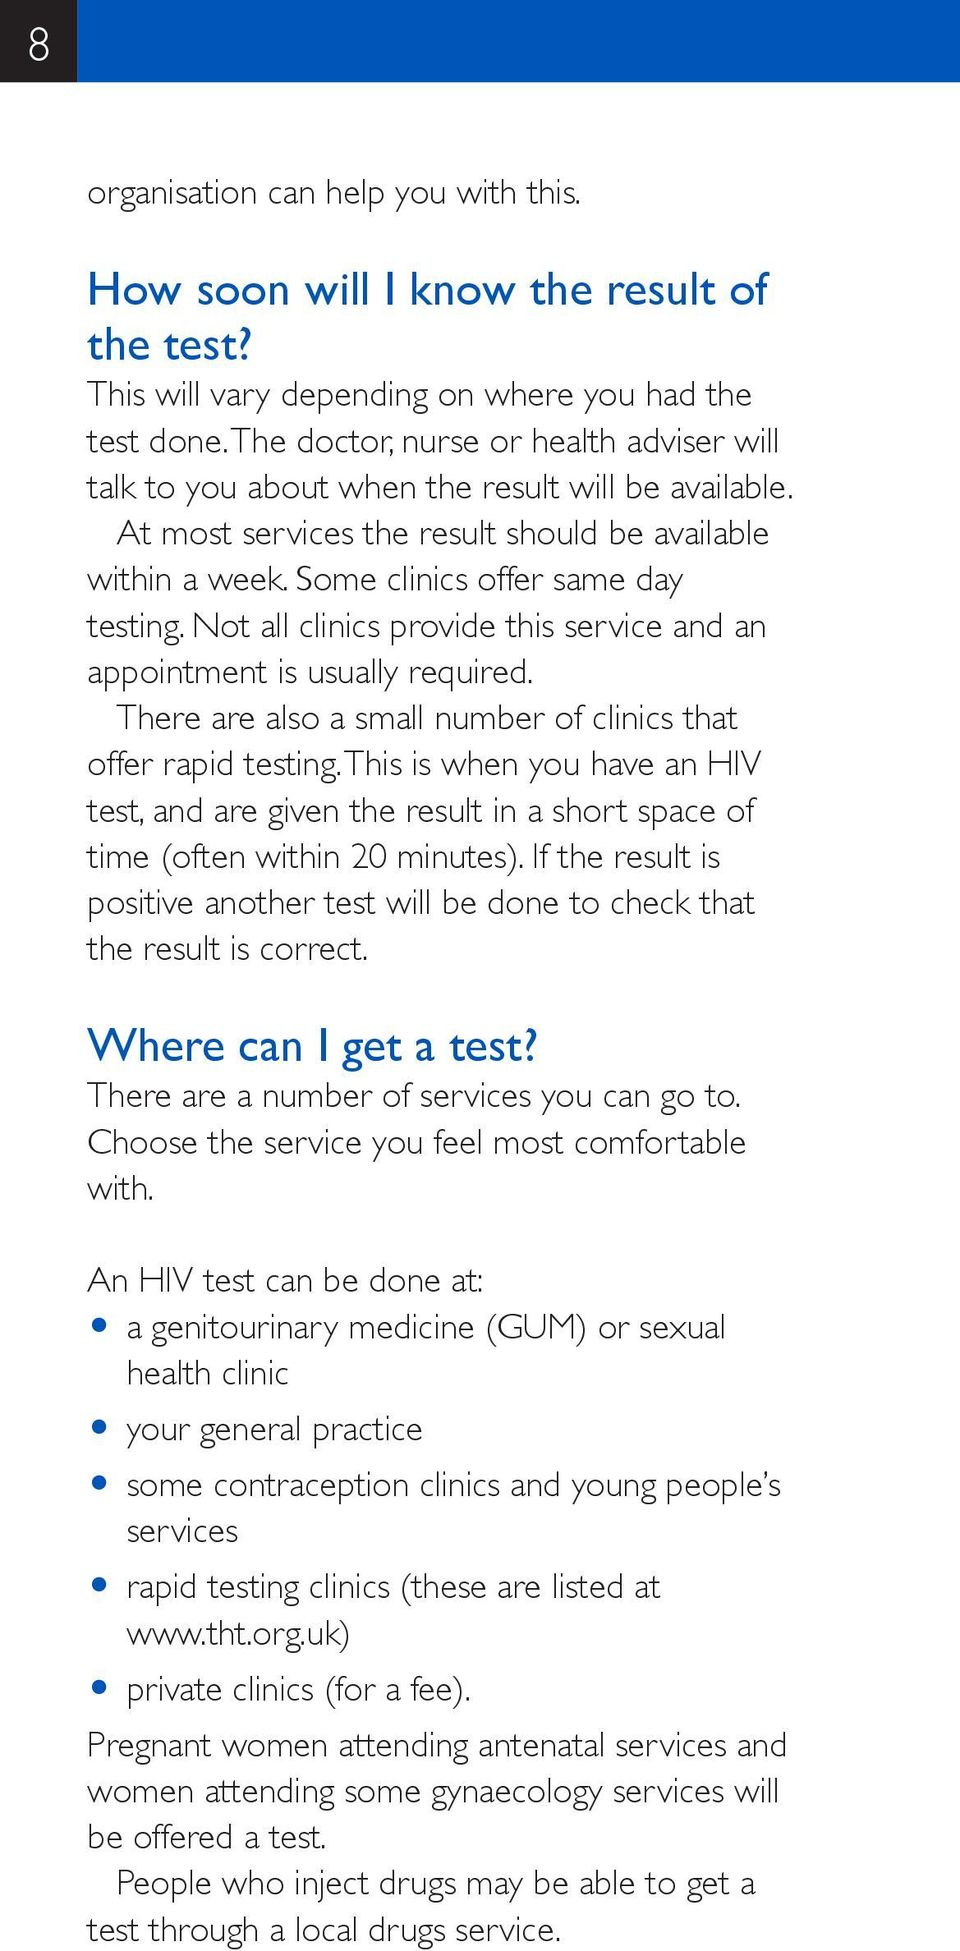 Not all clinics provide this service and an appointment is usually required. There are also a small number of clinics that offer rapid testing.